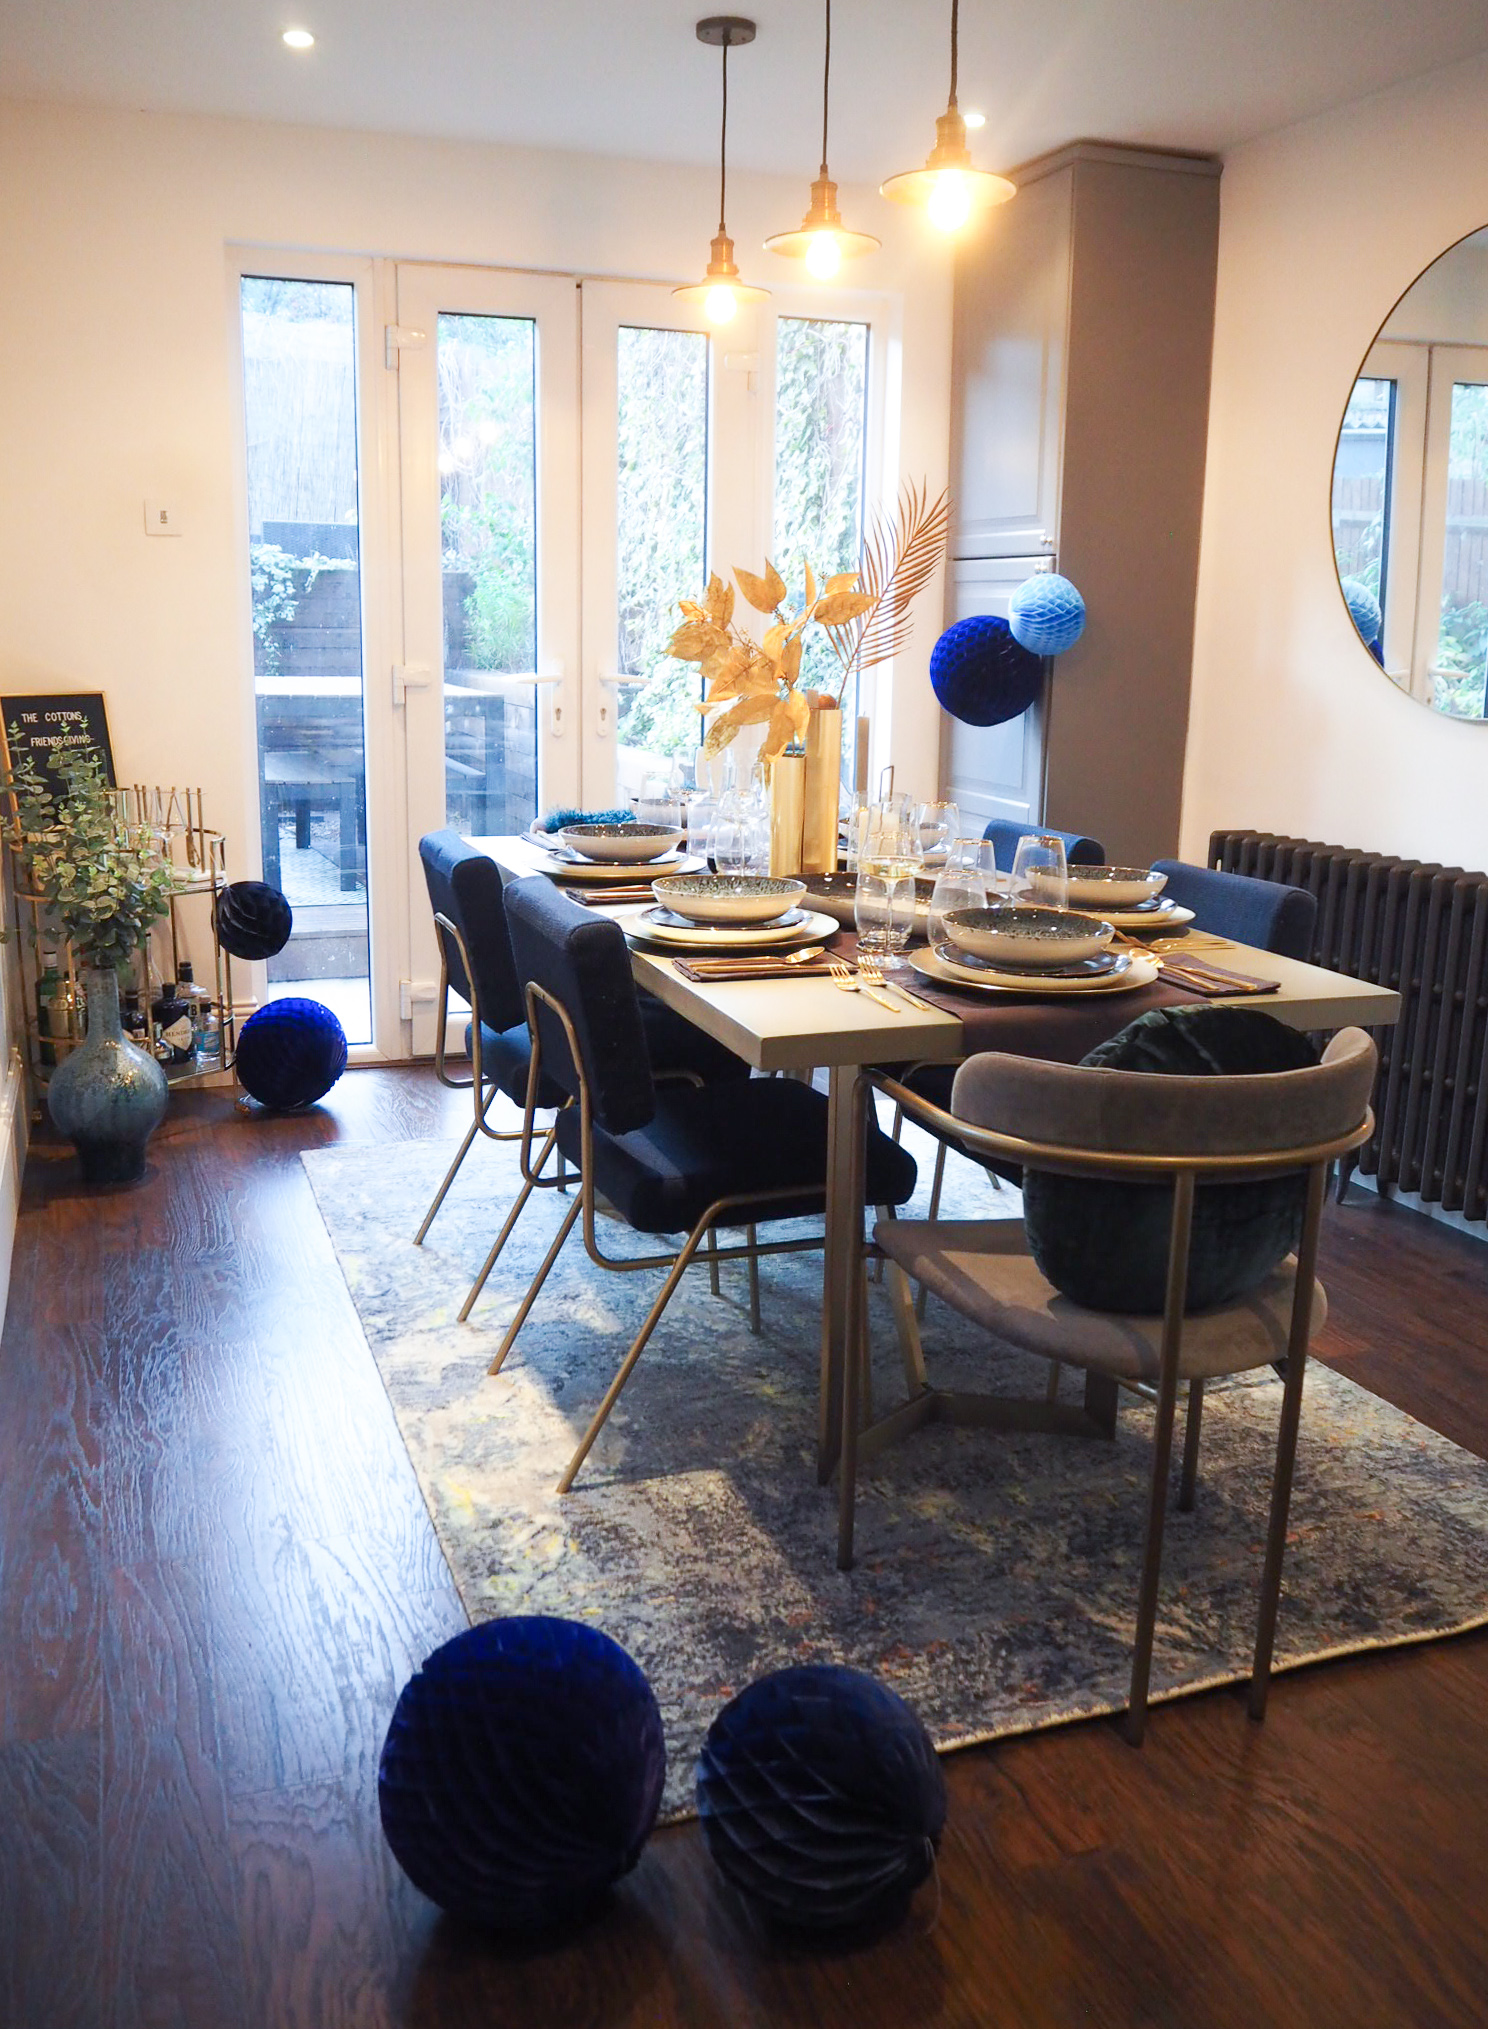 Orion Rug   £499,  from West Elm,   Tower dining table   £899 from West Elm.   Grey Lenox dining chair    £249 from west Elm